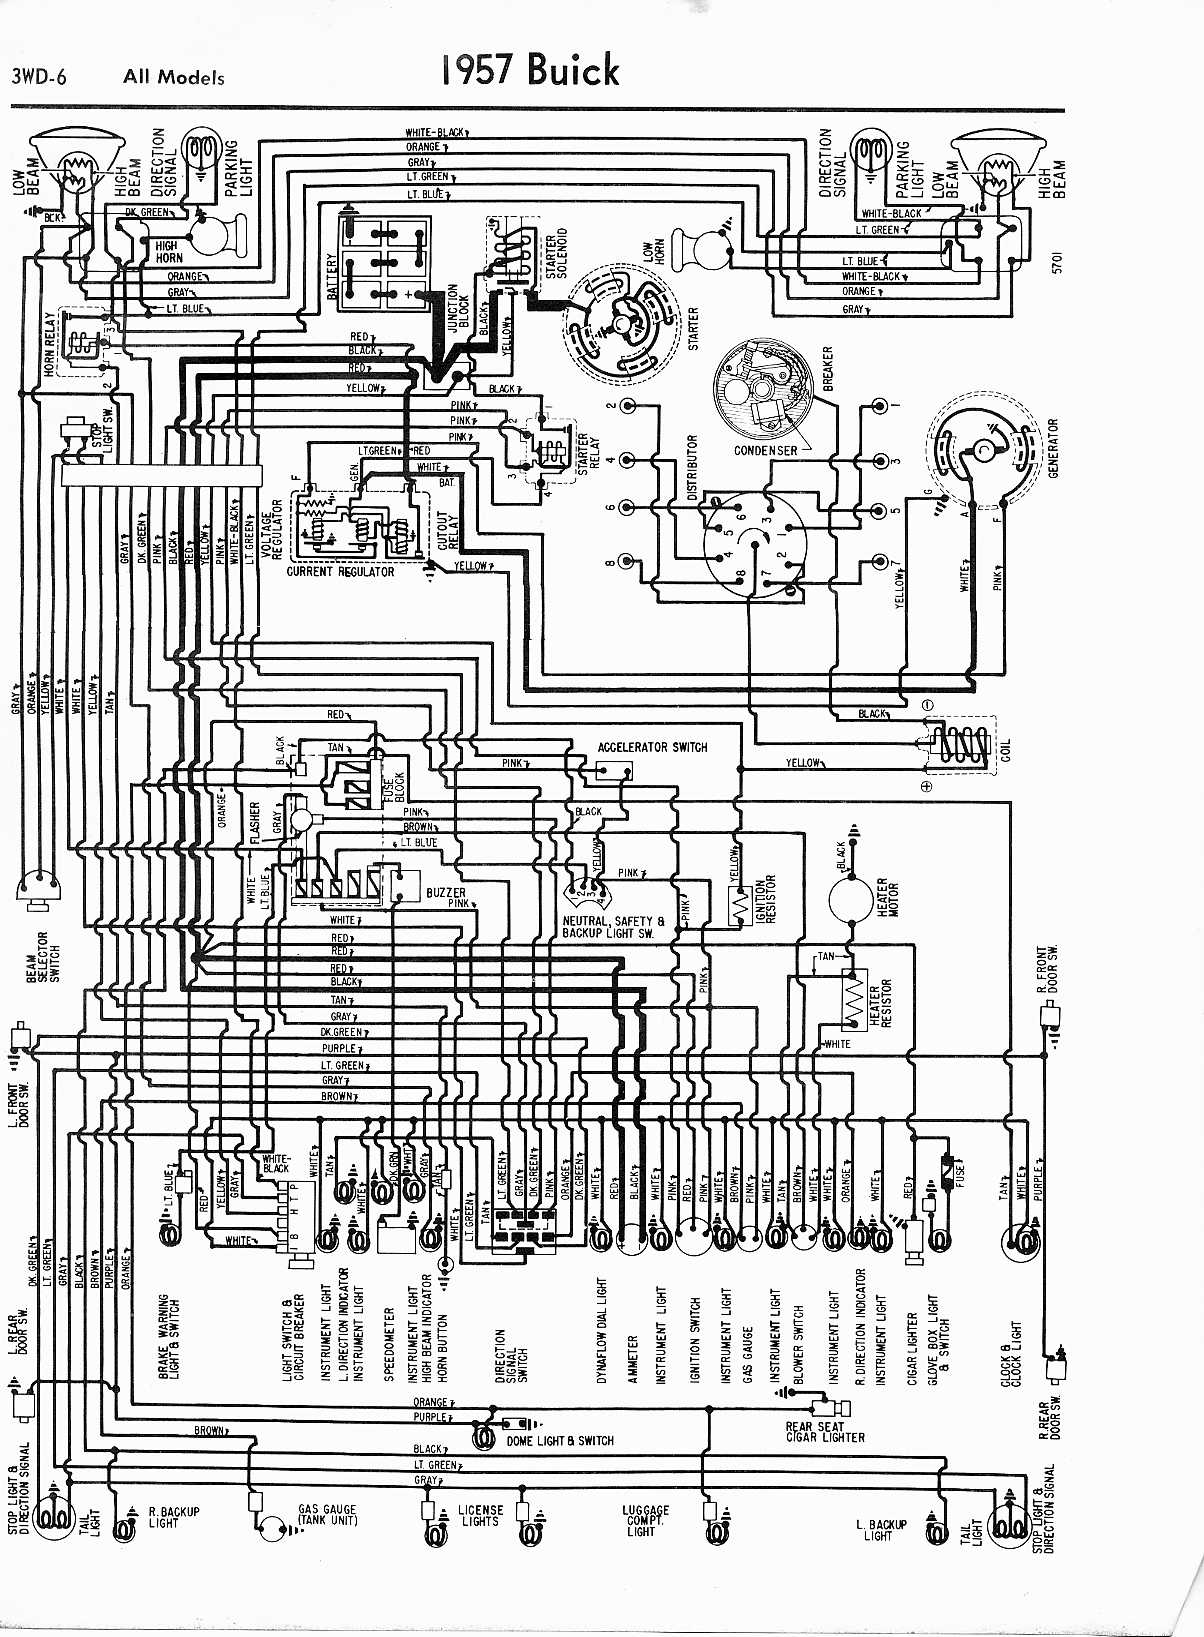 1992 buick riviera wiring diagram not lossing wiring diagram • buick wiring diagrams 1957 1965 buick lesabre engine diagram 2002 buick lesabre engine diagram